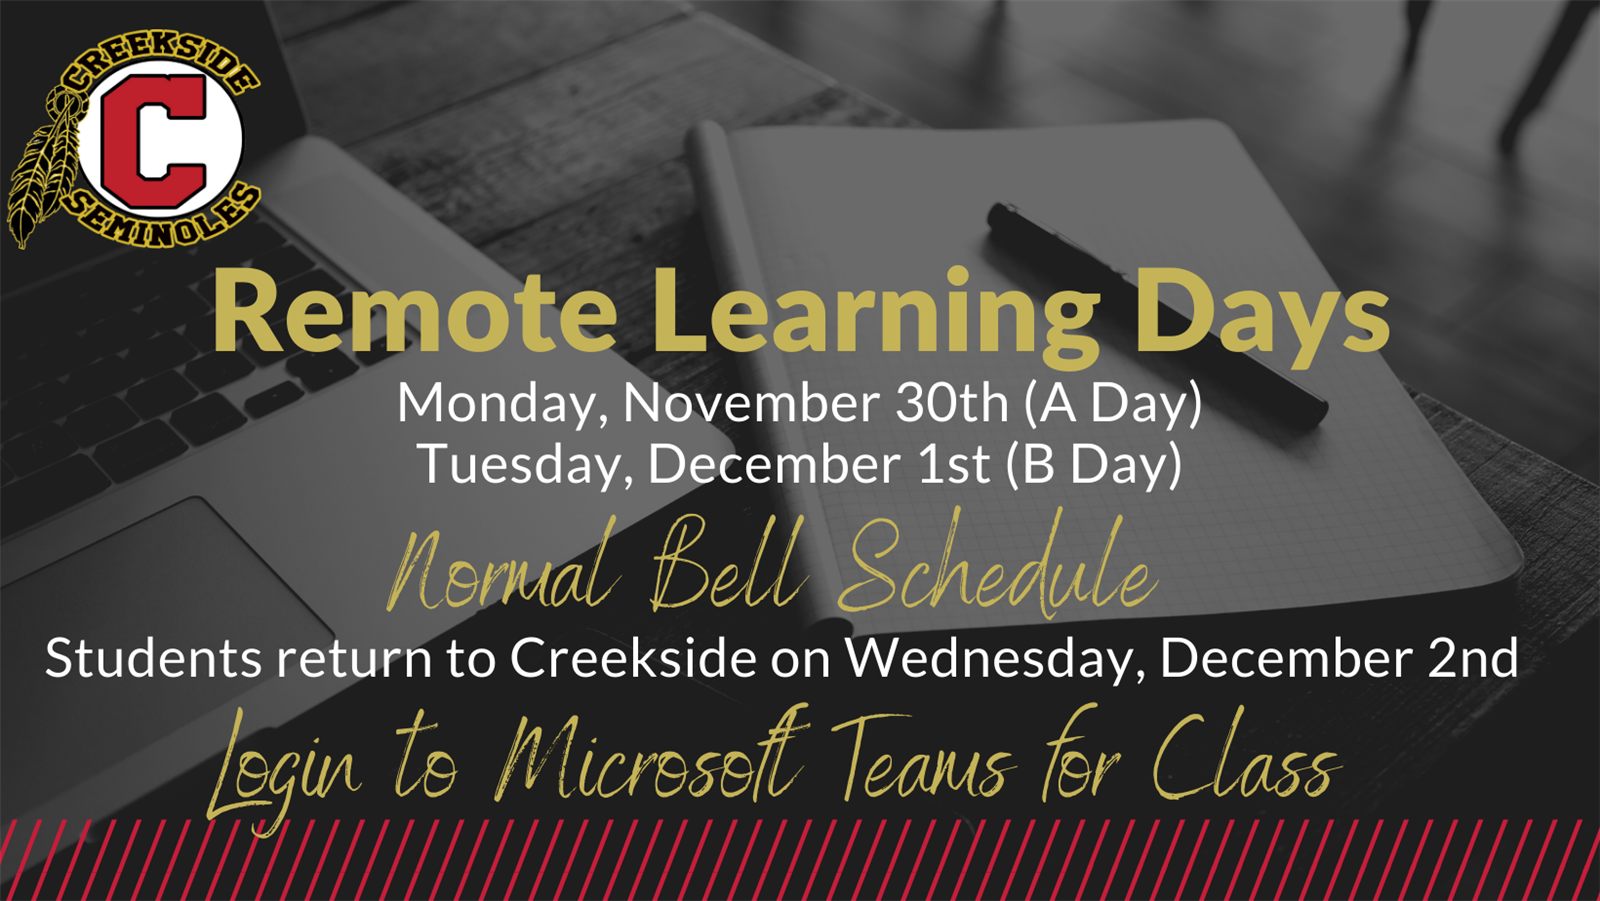 District Remote Learning Days: November 30th & December 1st